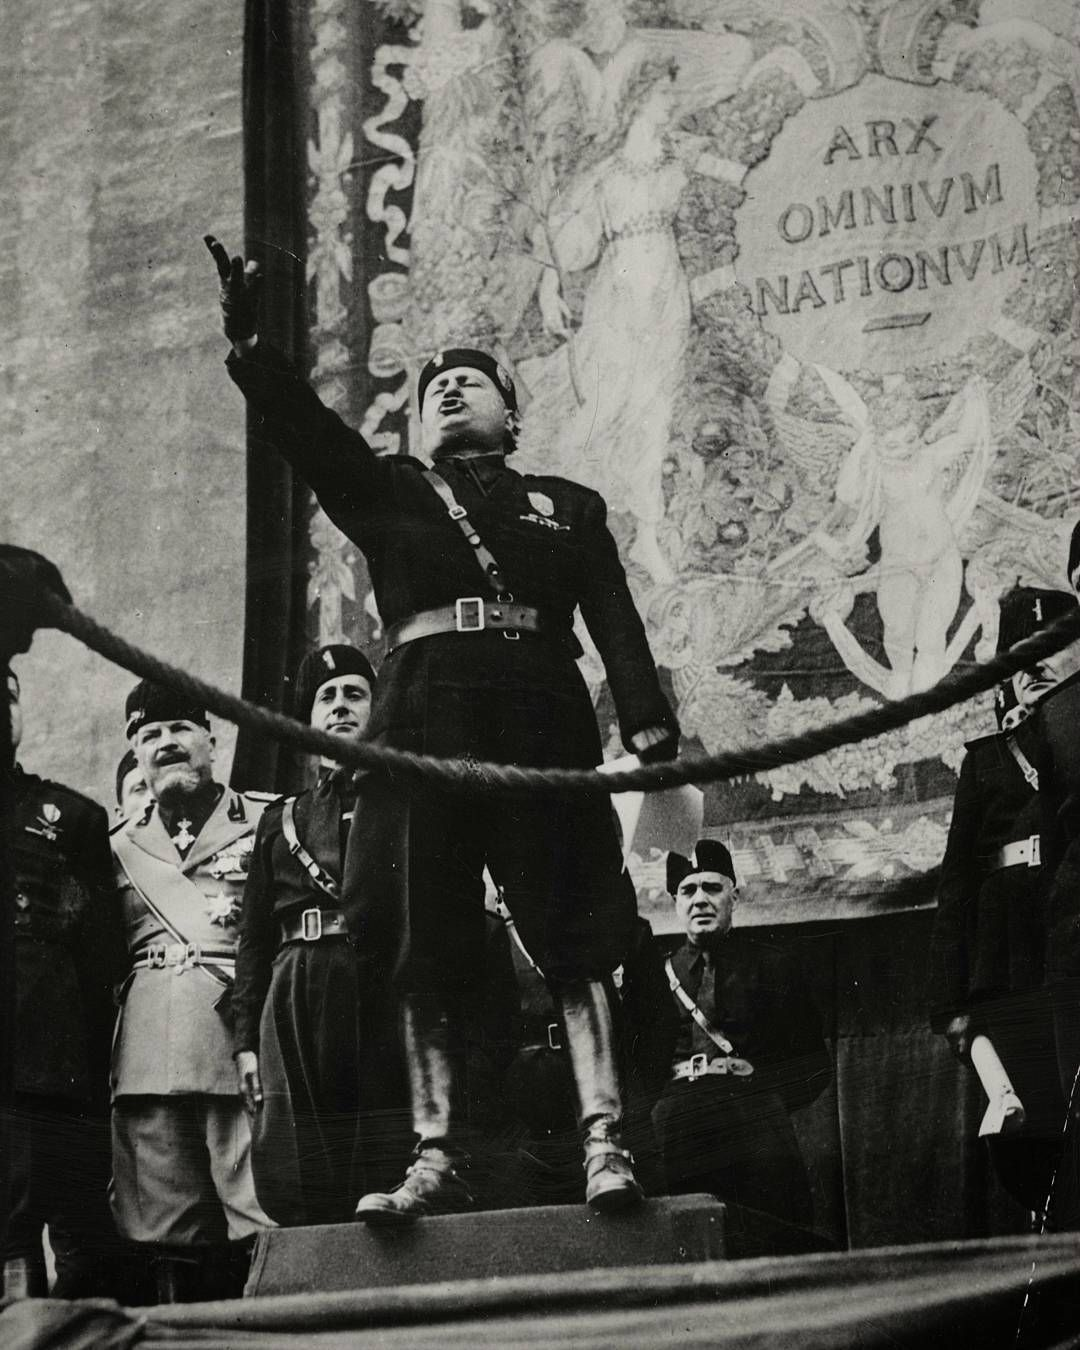 On this day in history April 28th 1945 Benito Mussolini il Duce and his  mistress Clara Petacci are executed by a firing squad.